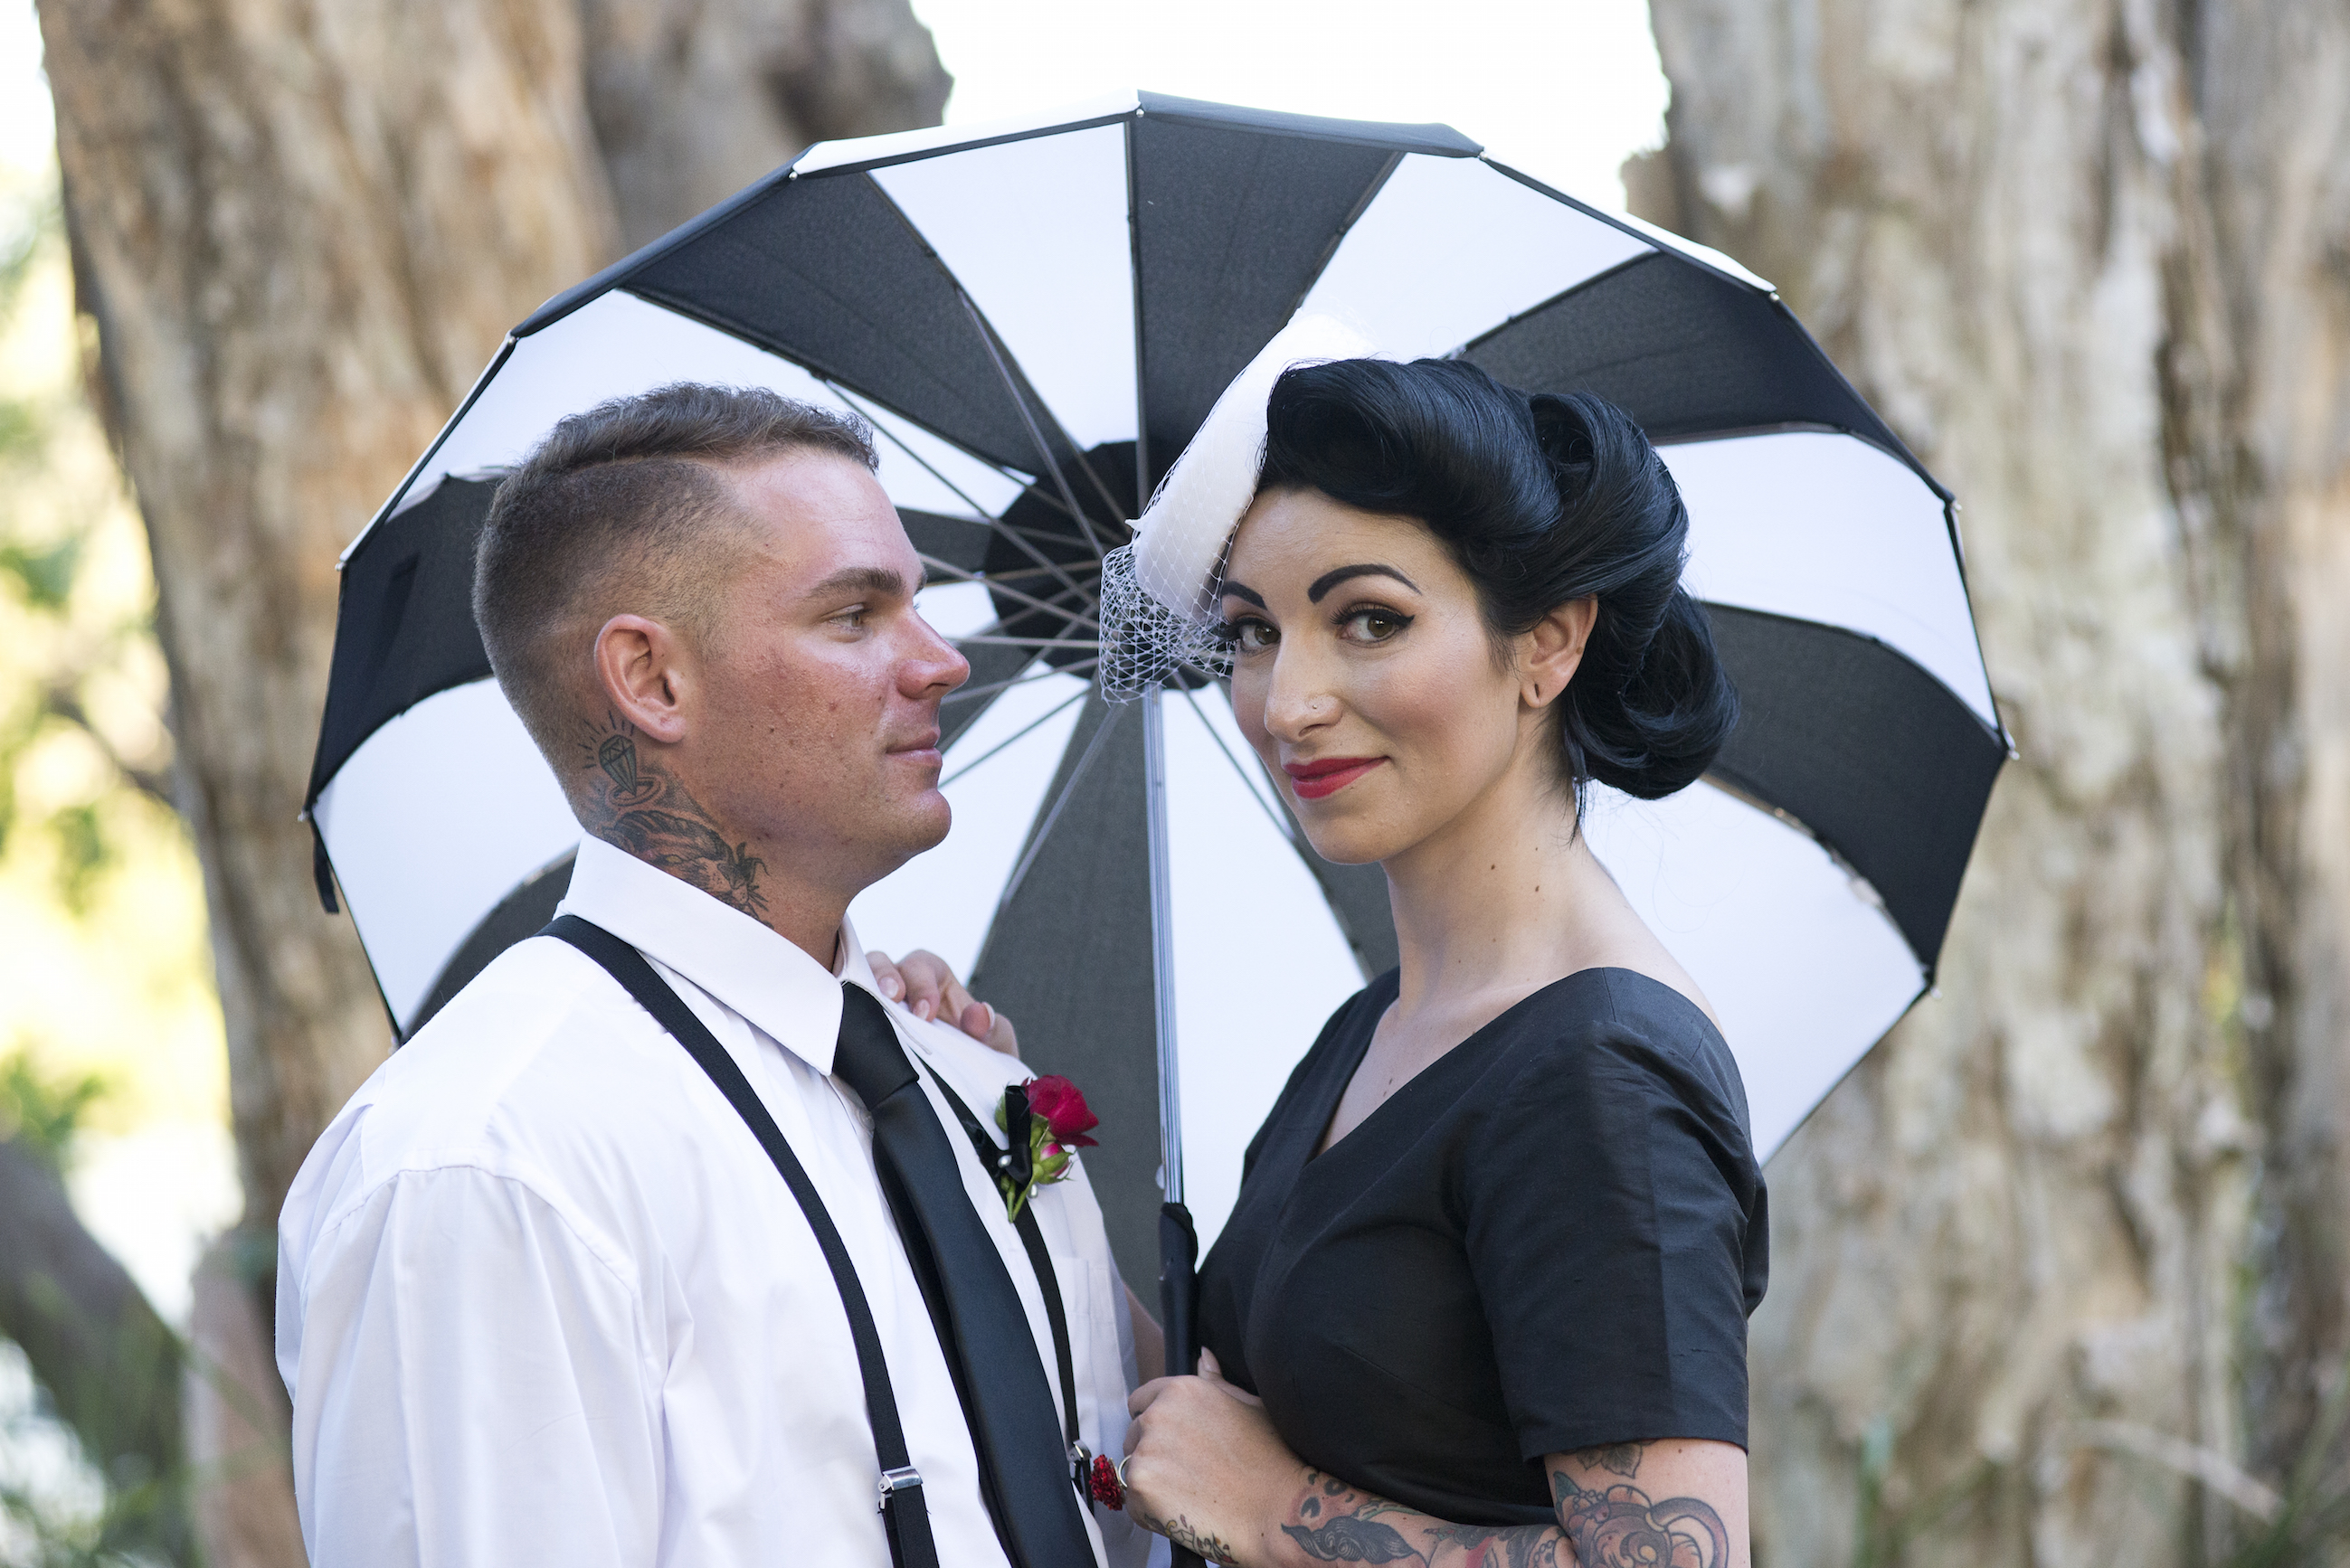 Vintage fashion inspired black and white wedding